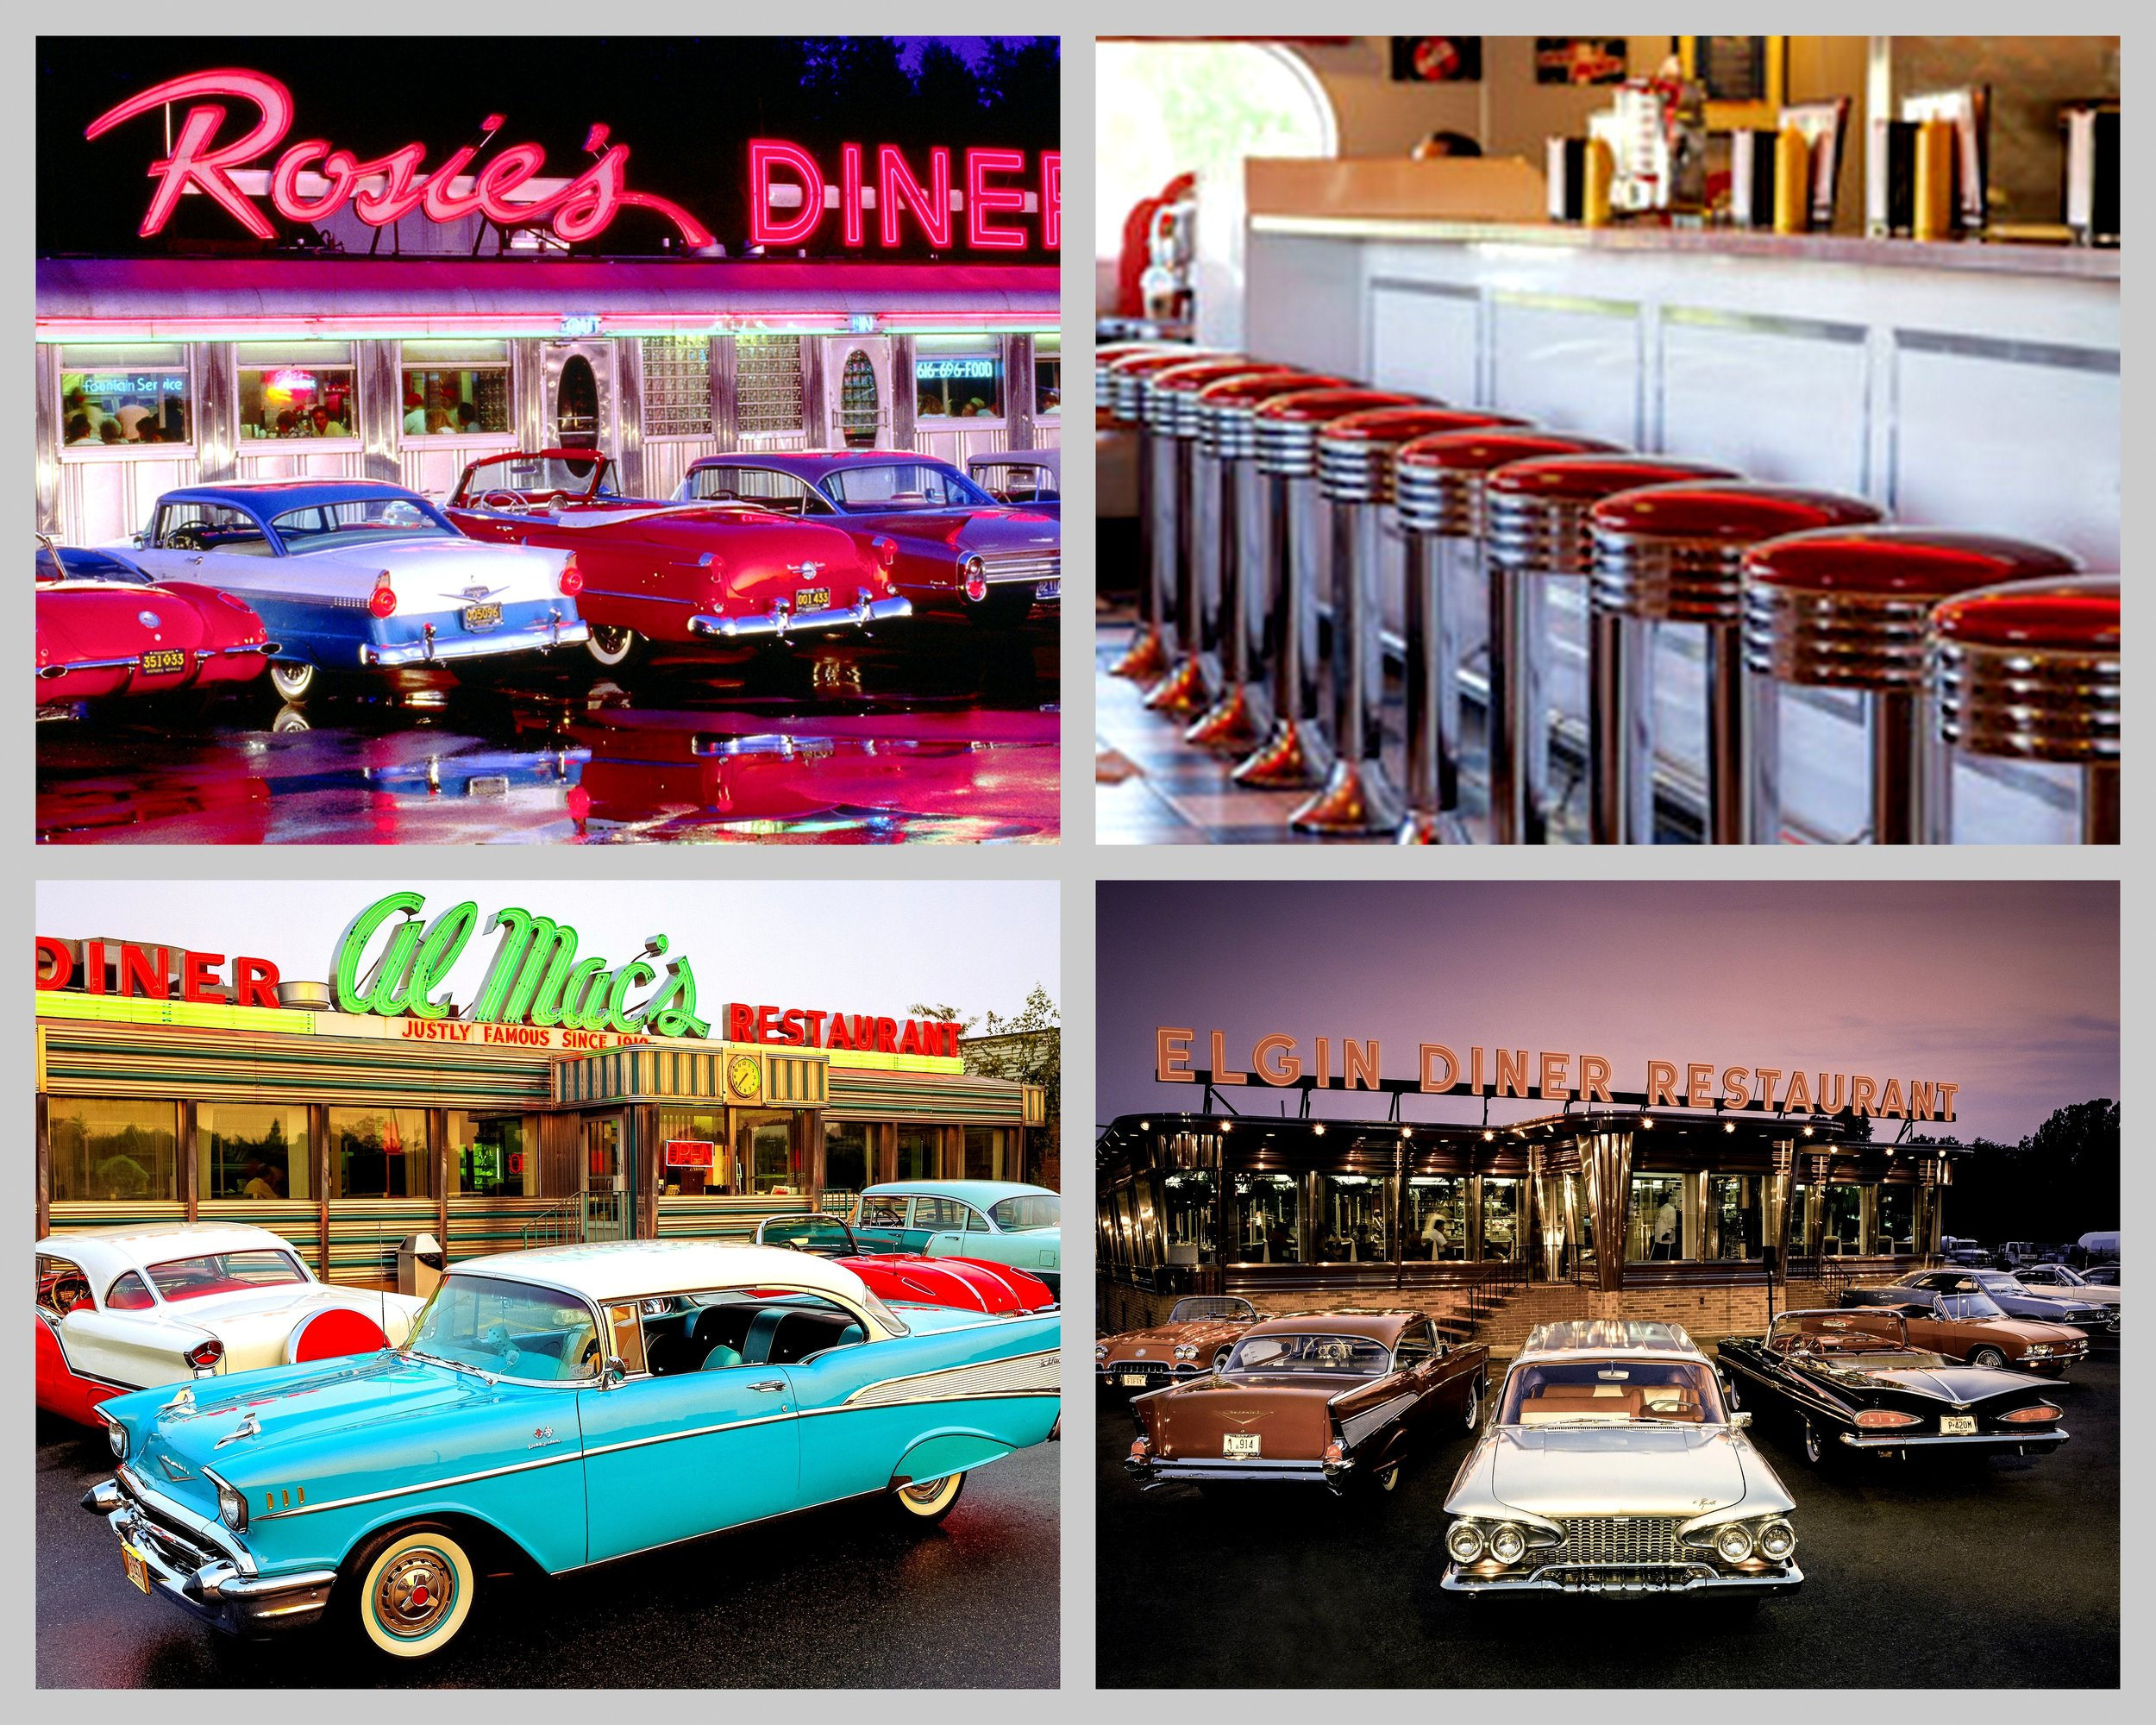 1. CC.Collage.Diners.jpg